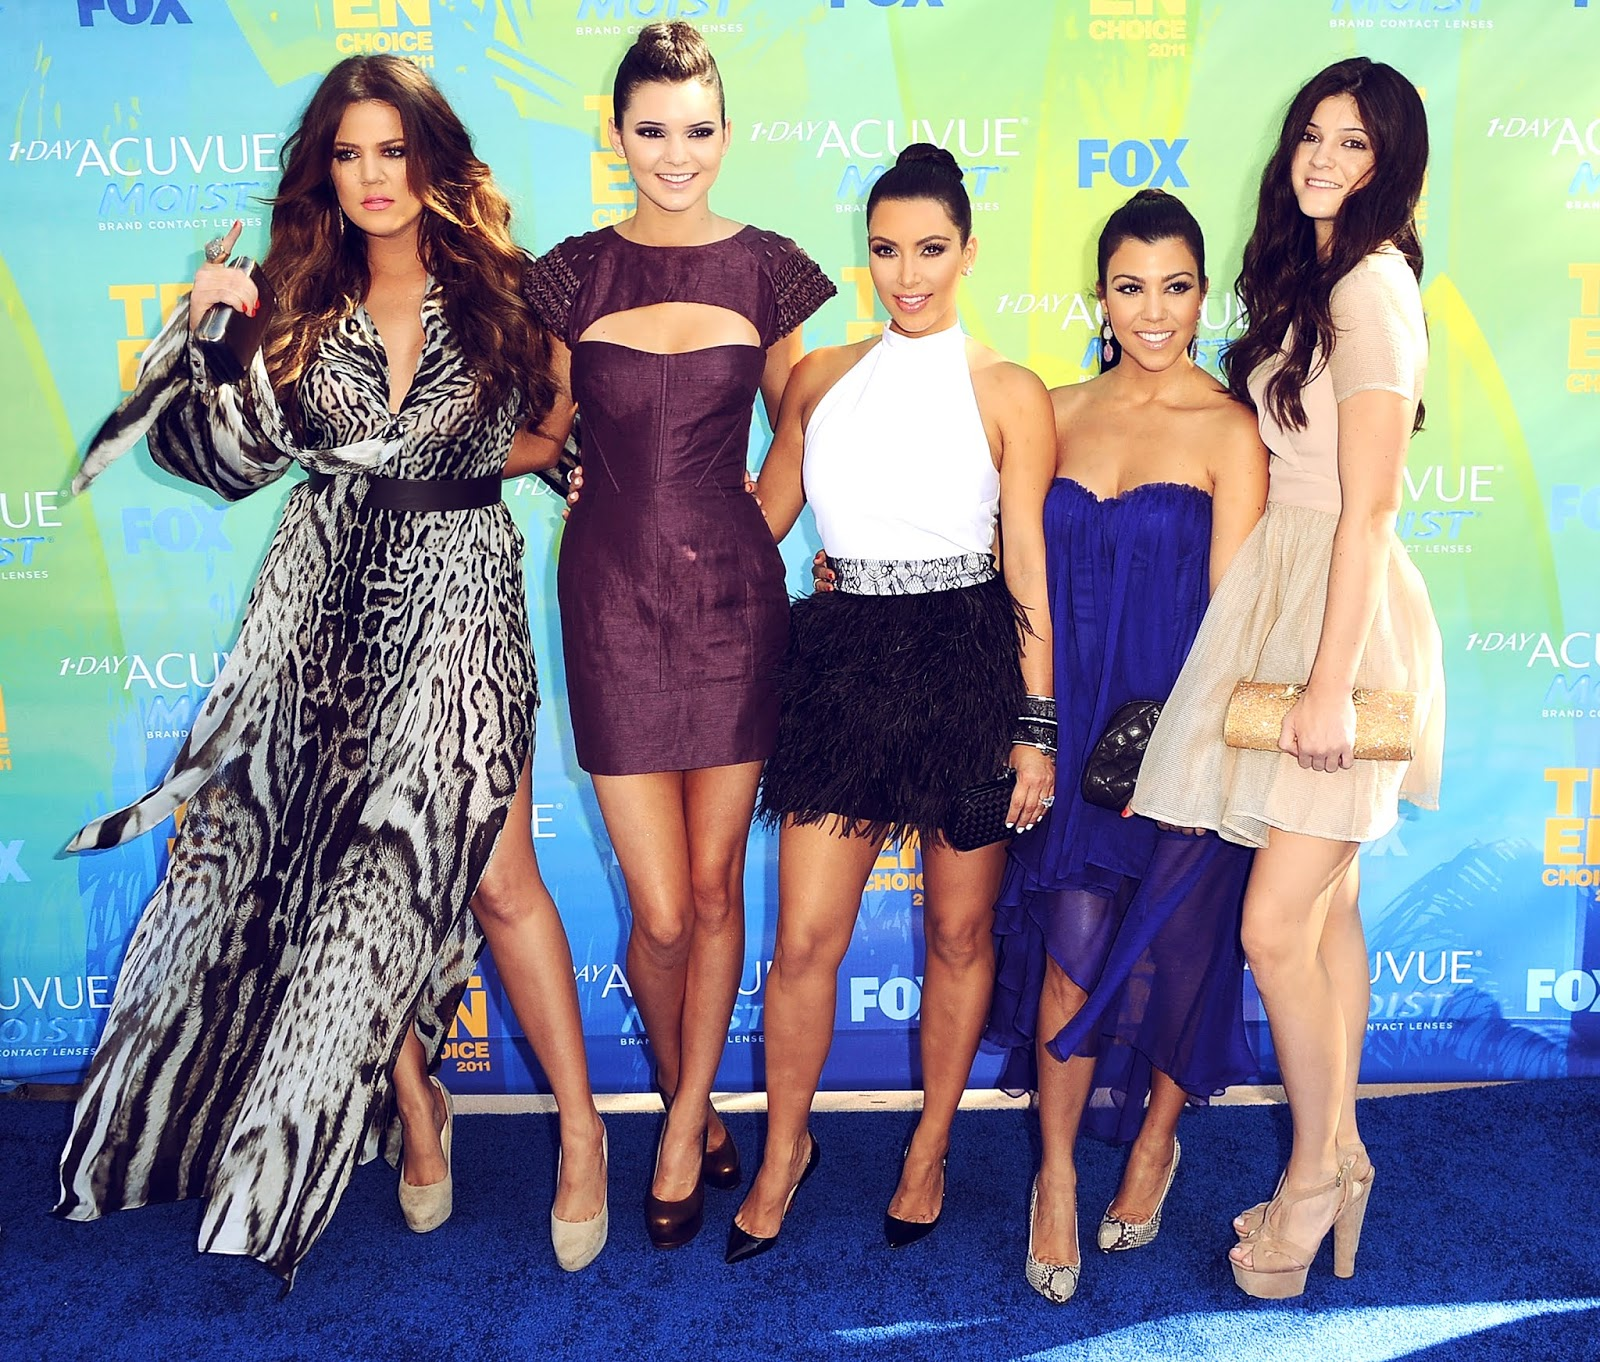 35 - Teen Choice Awards in August 11, 2011